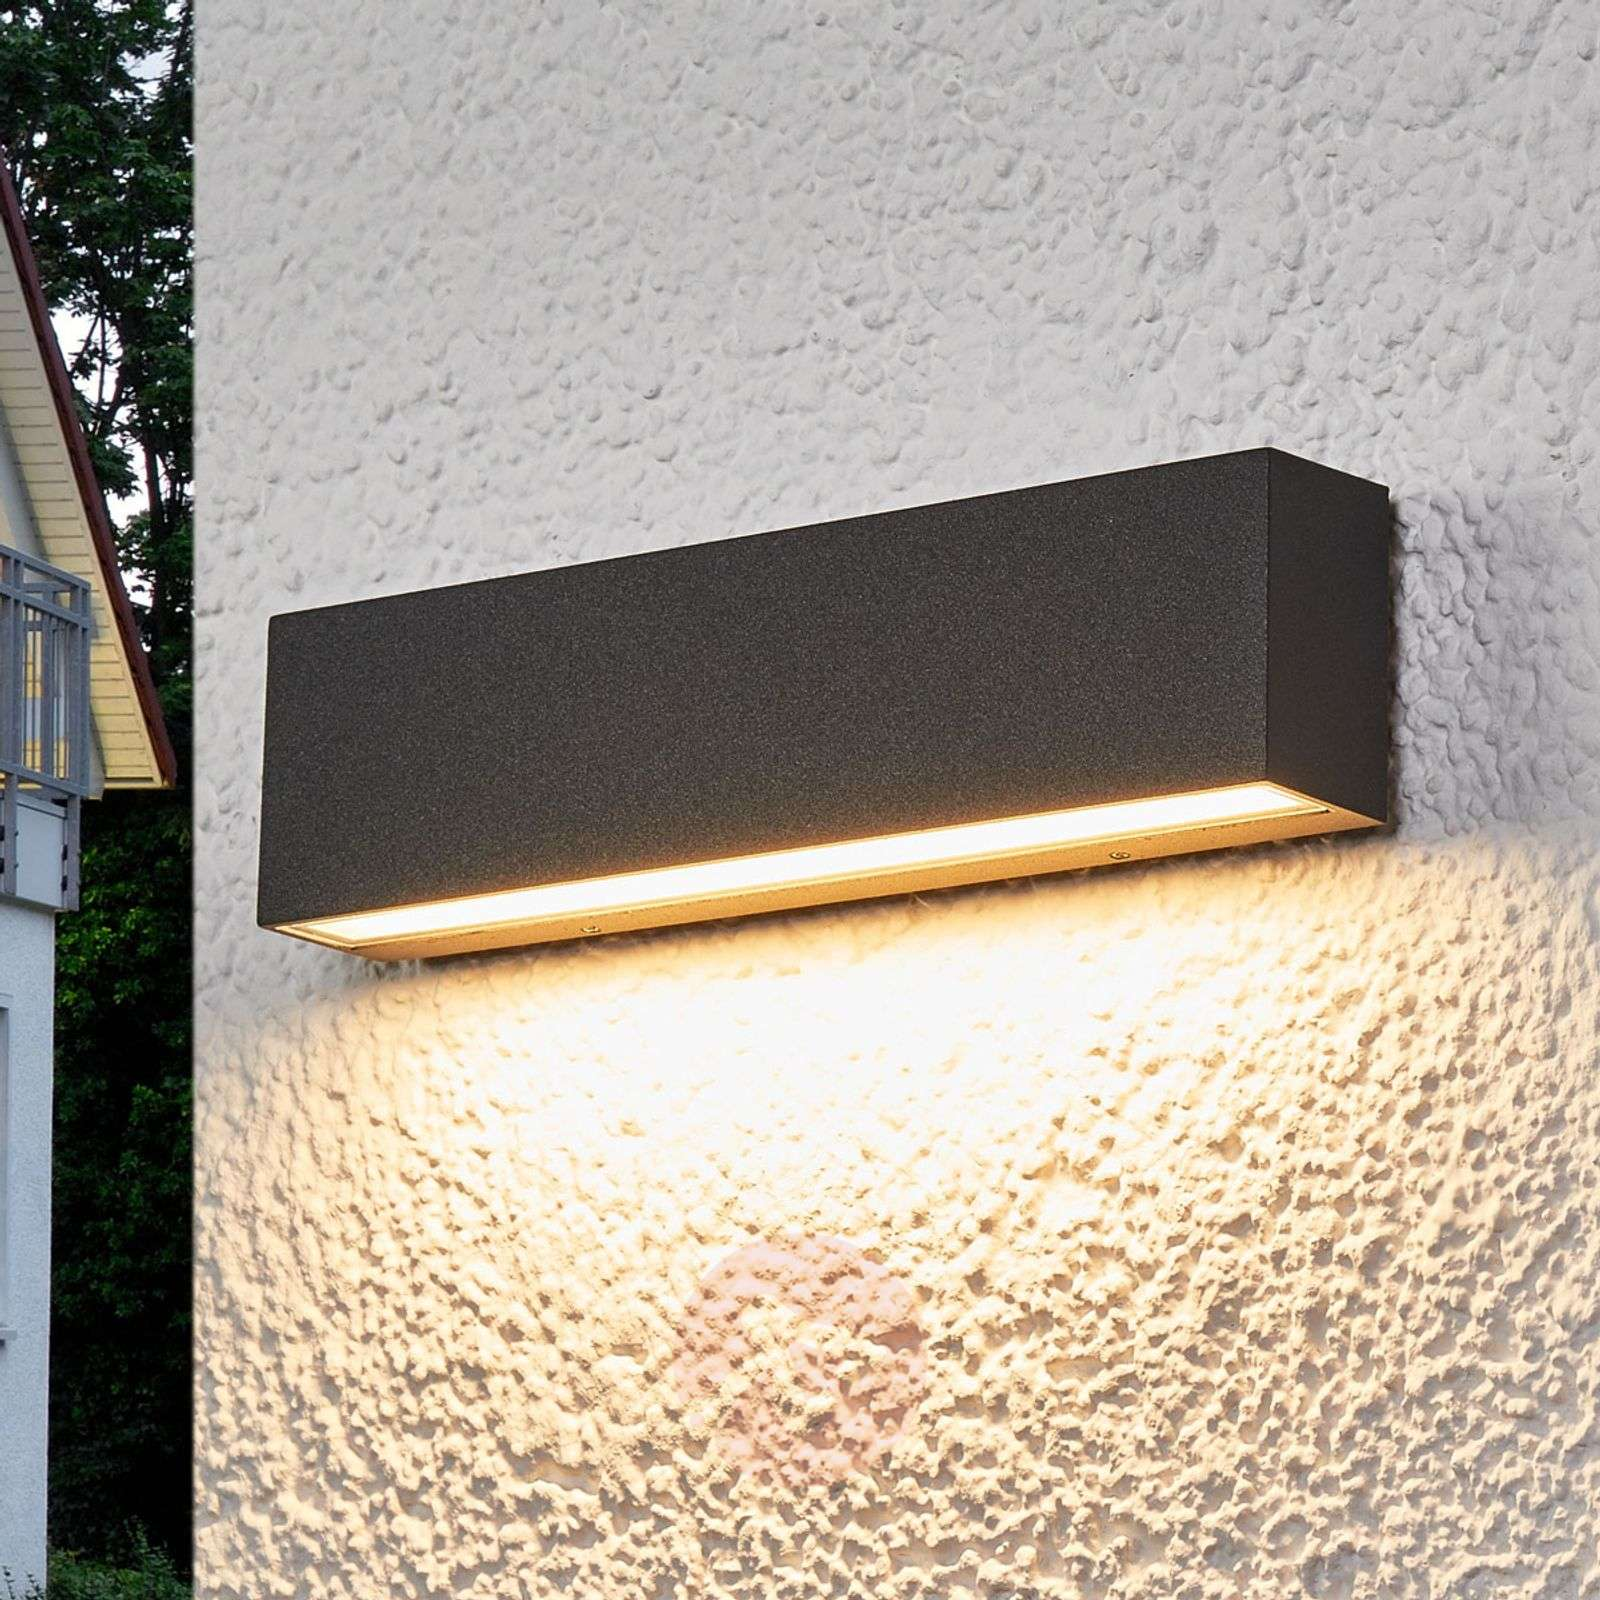 Elvira graphite-grey IP65 LED outdoor wall lamp-9616097-02